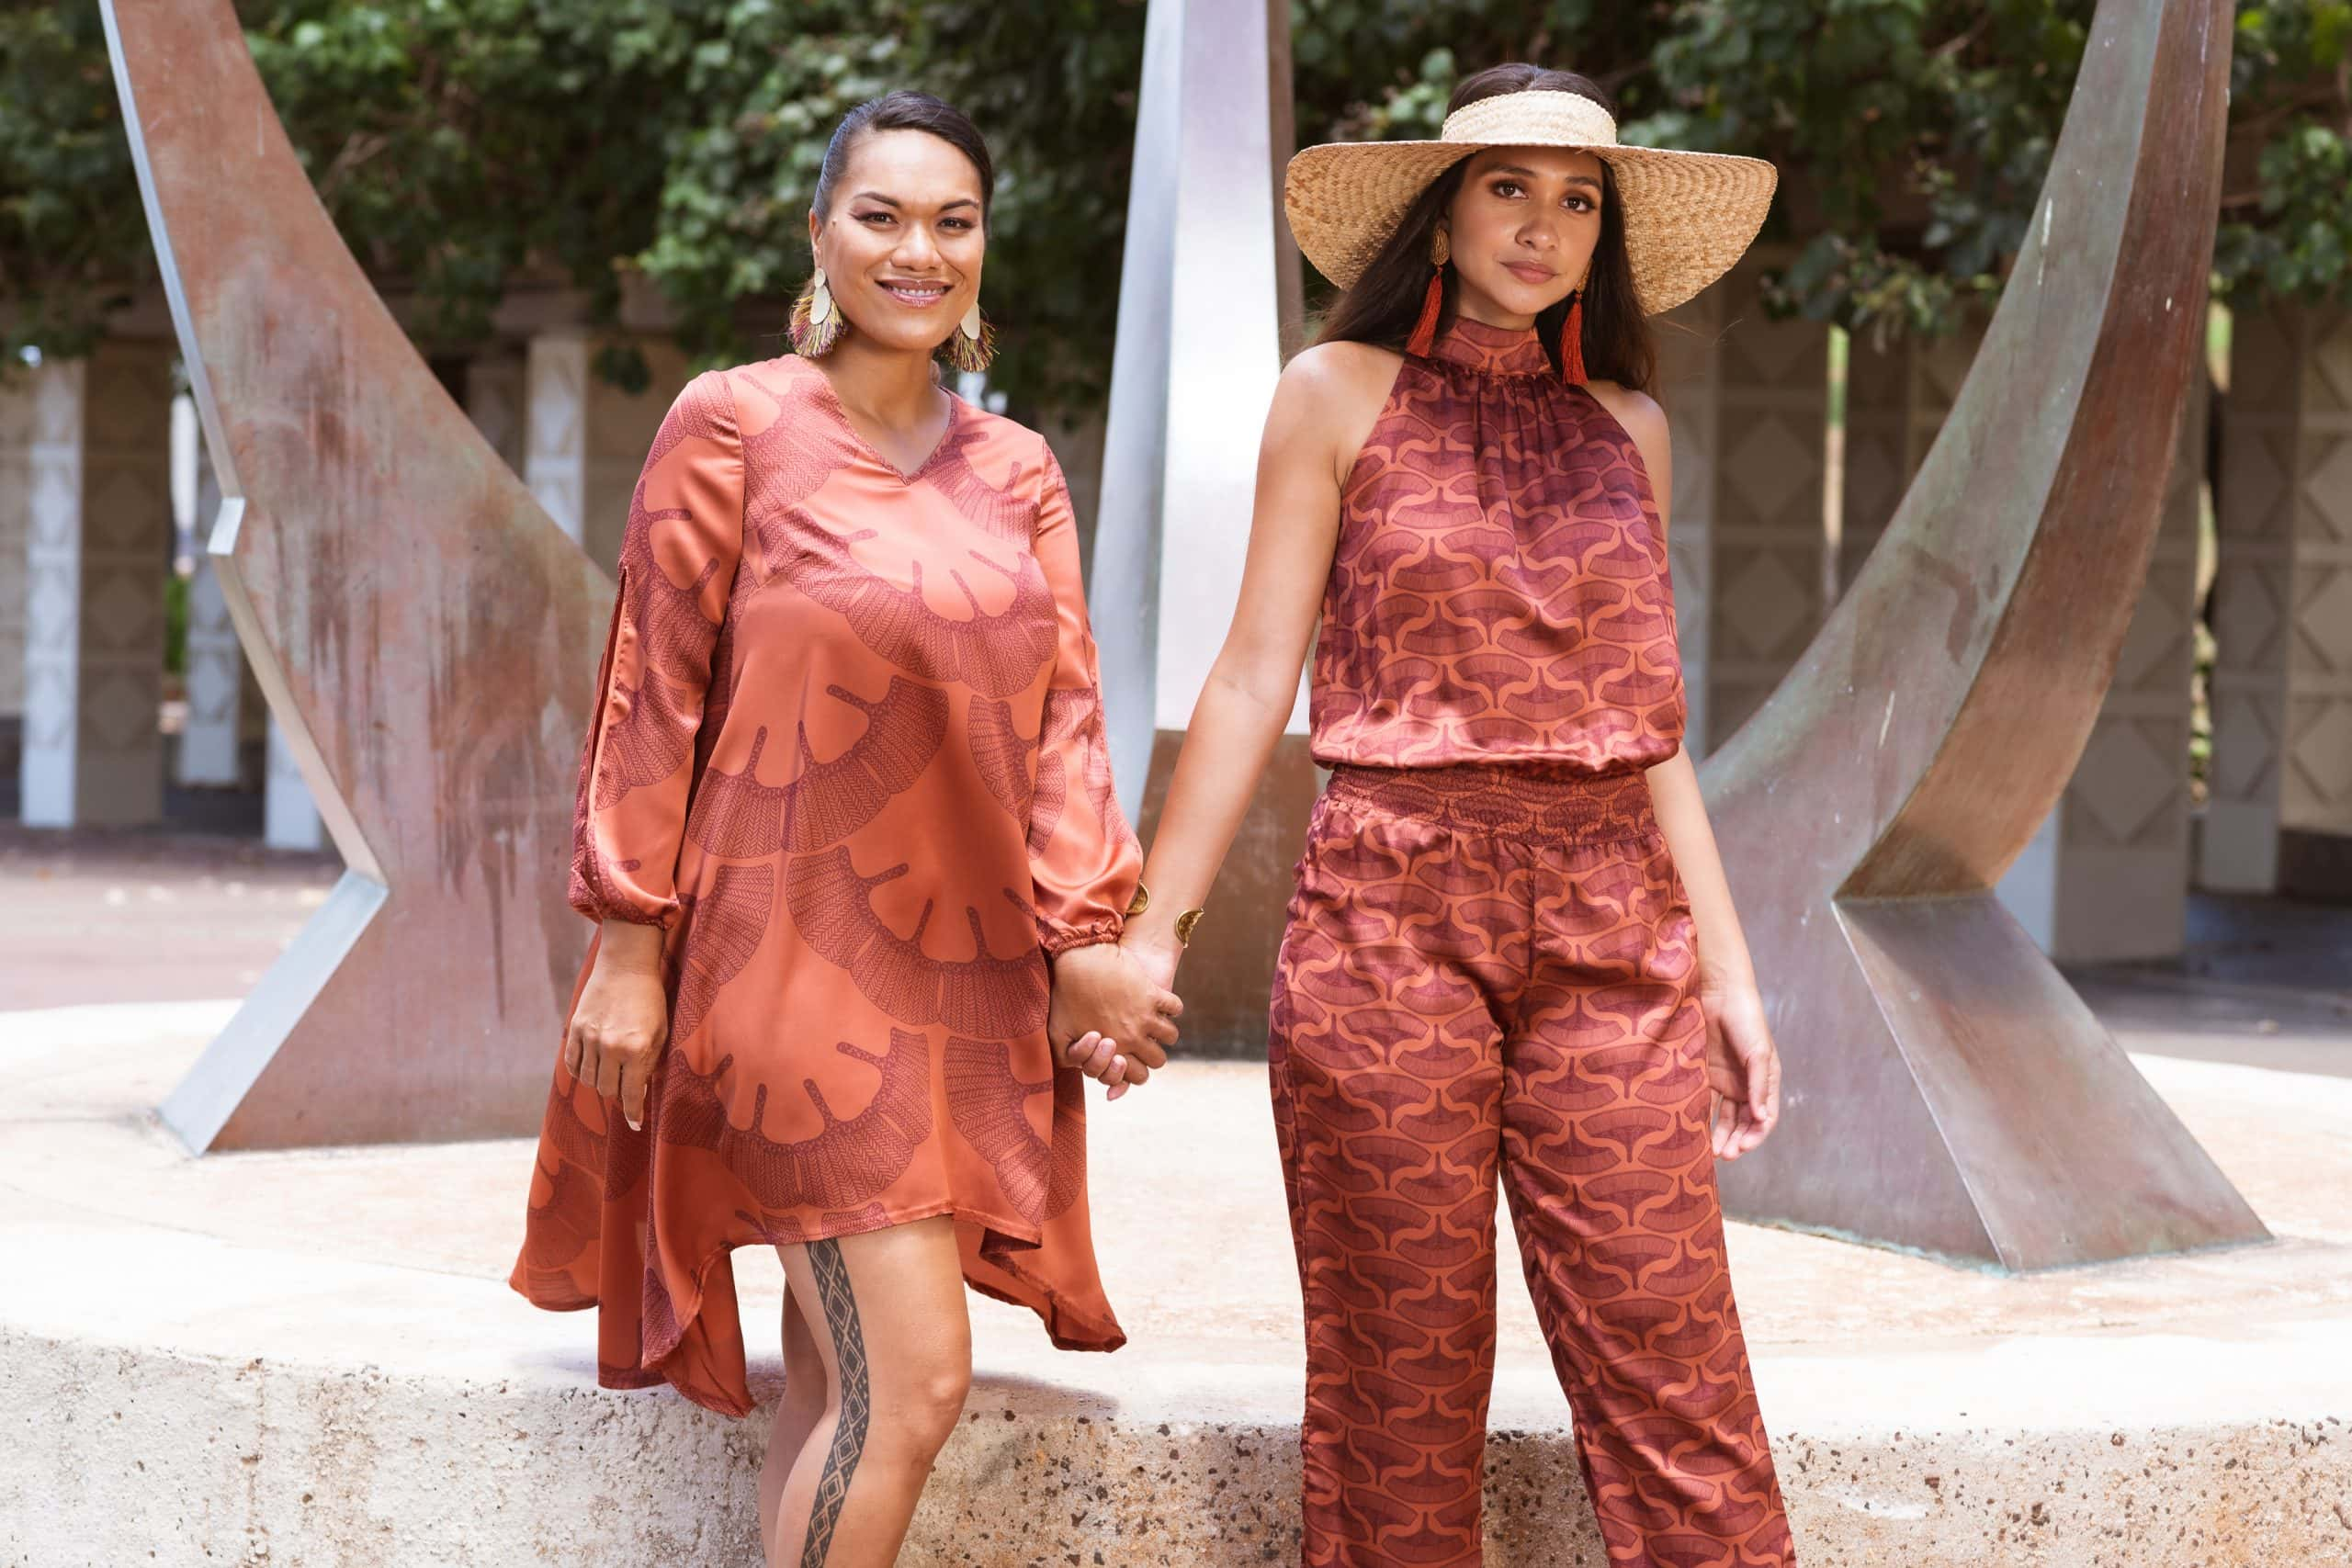 Models wearing Keaolani and Noveo Jumpsuit in Copper/Red Mahagony - Front View